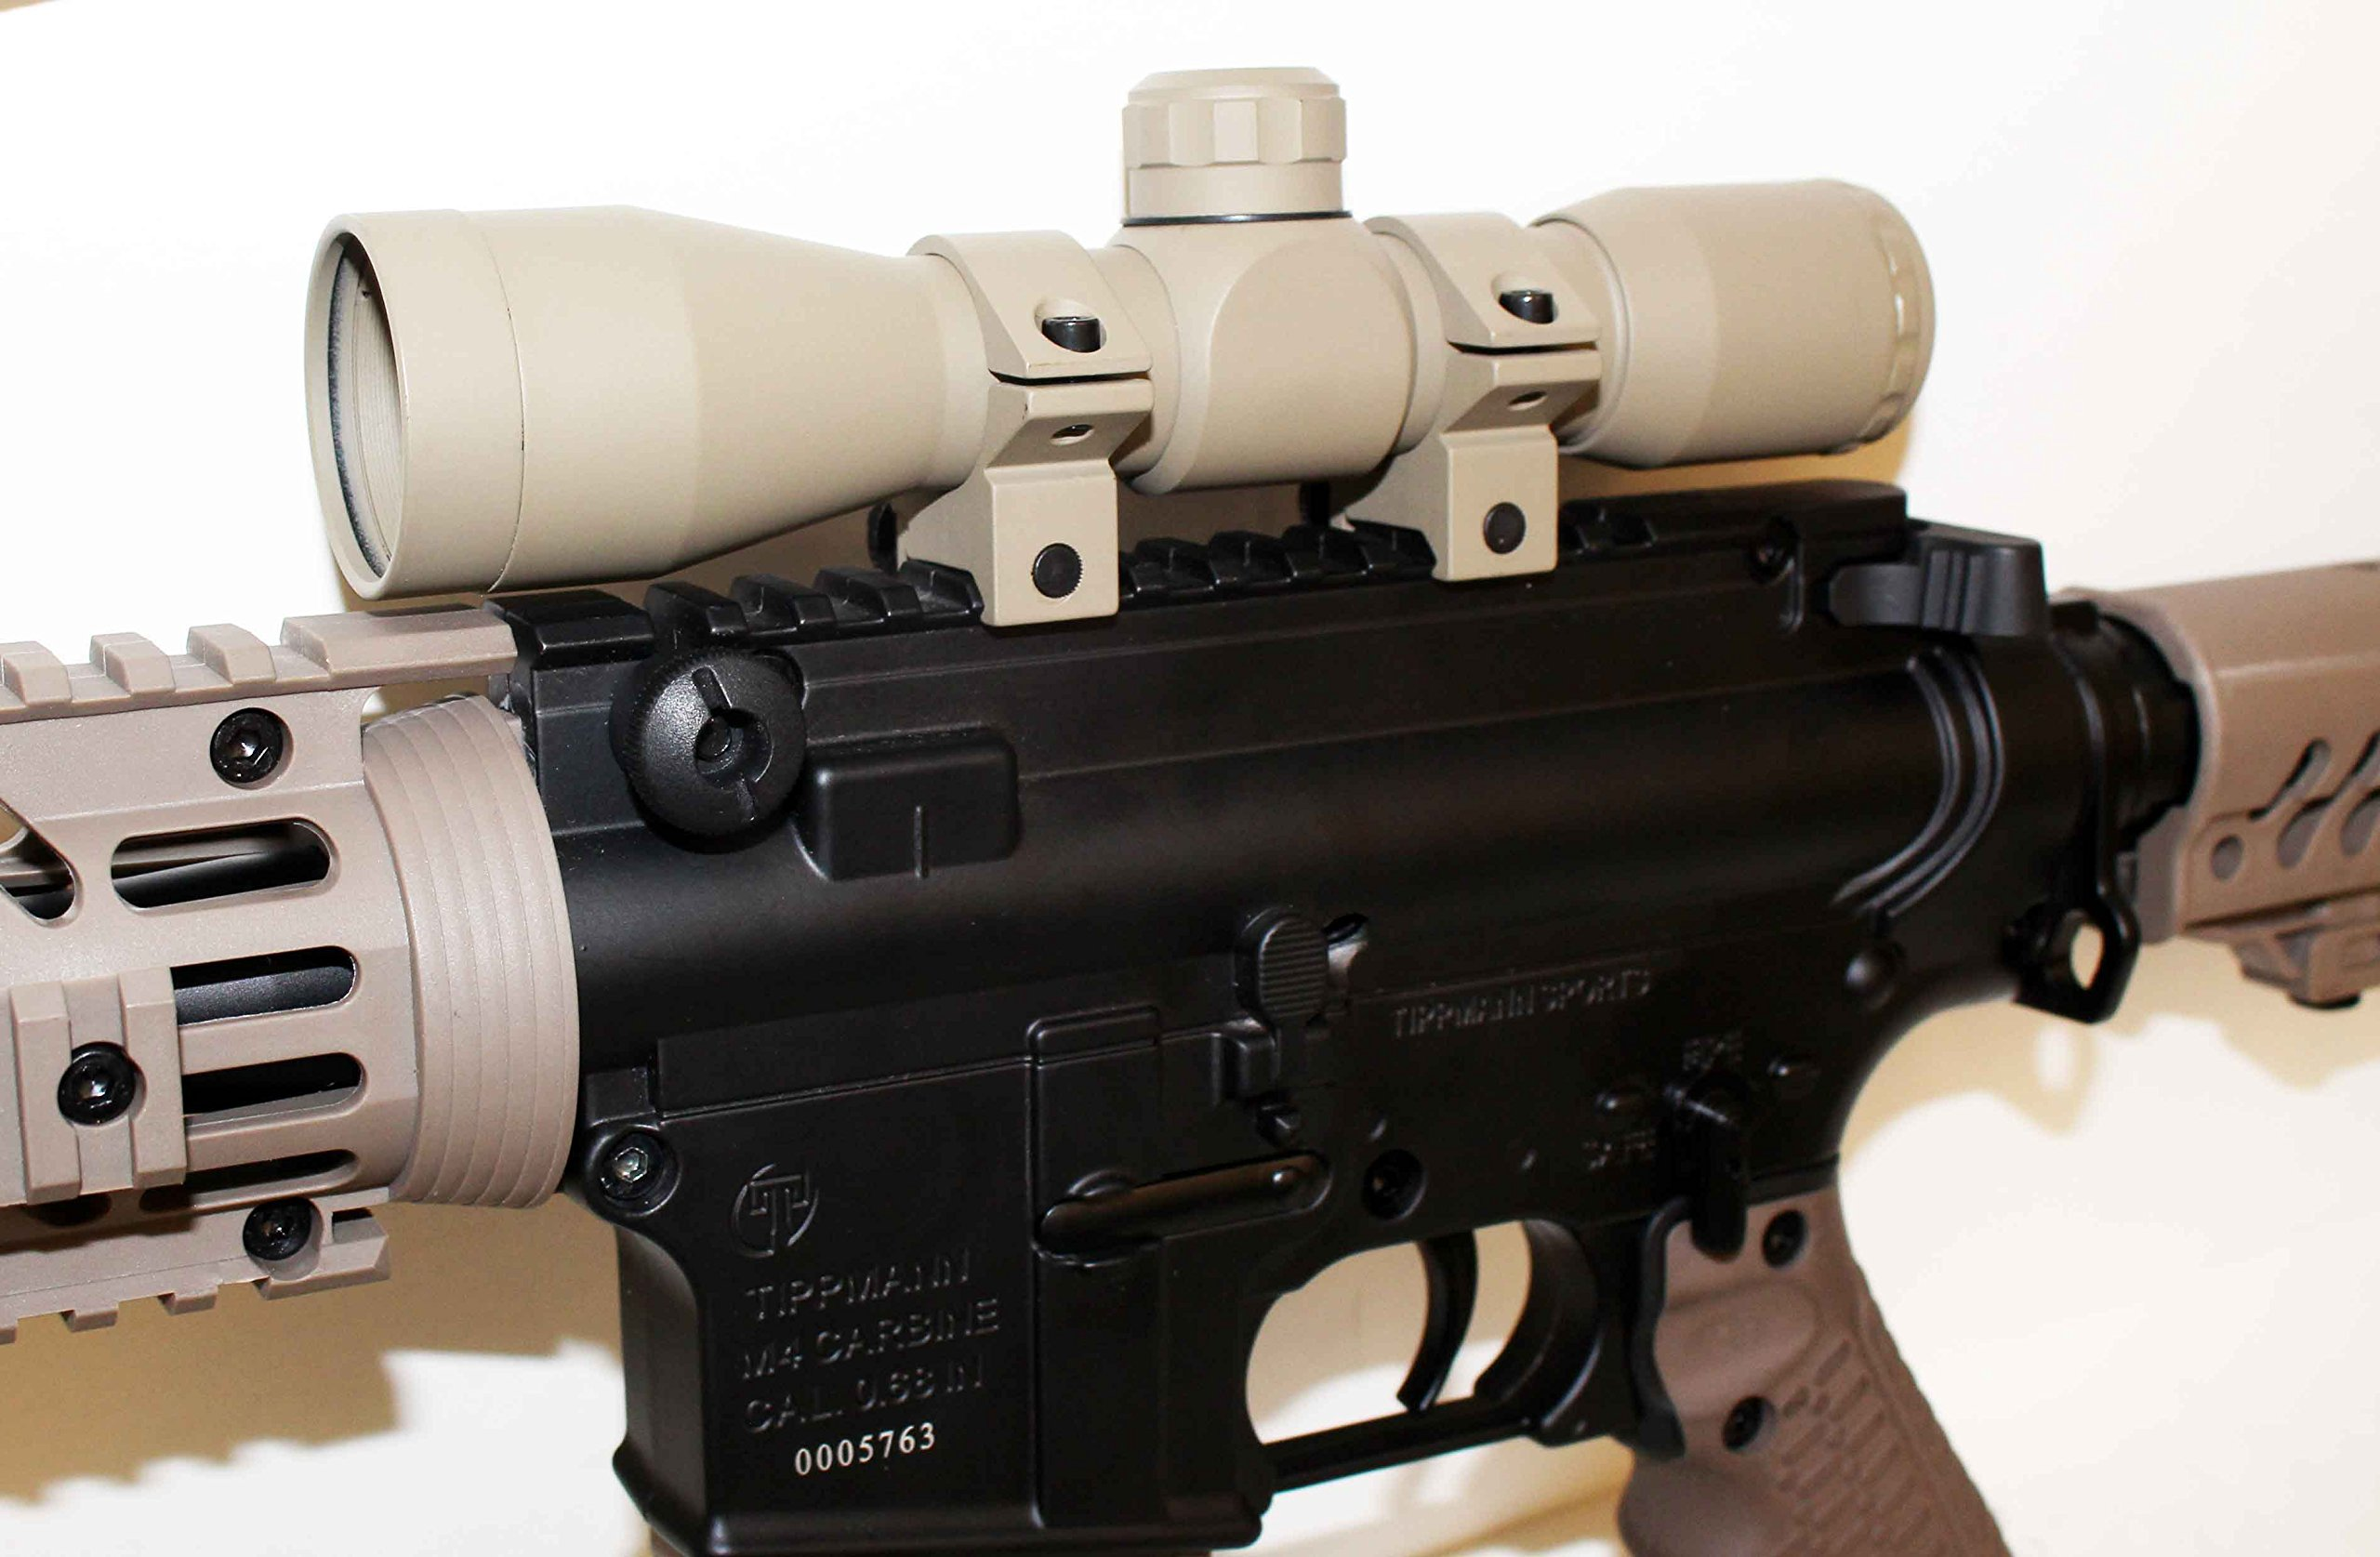 TRINITY Paintball 4x32 Sniper Scope TAN For TIPPMANN CRONUS accessories paintball parts, Woodsball, Tactical paintball. by Trinity